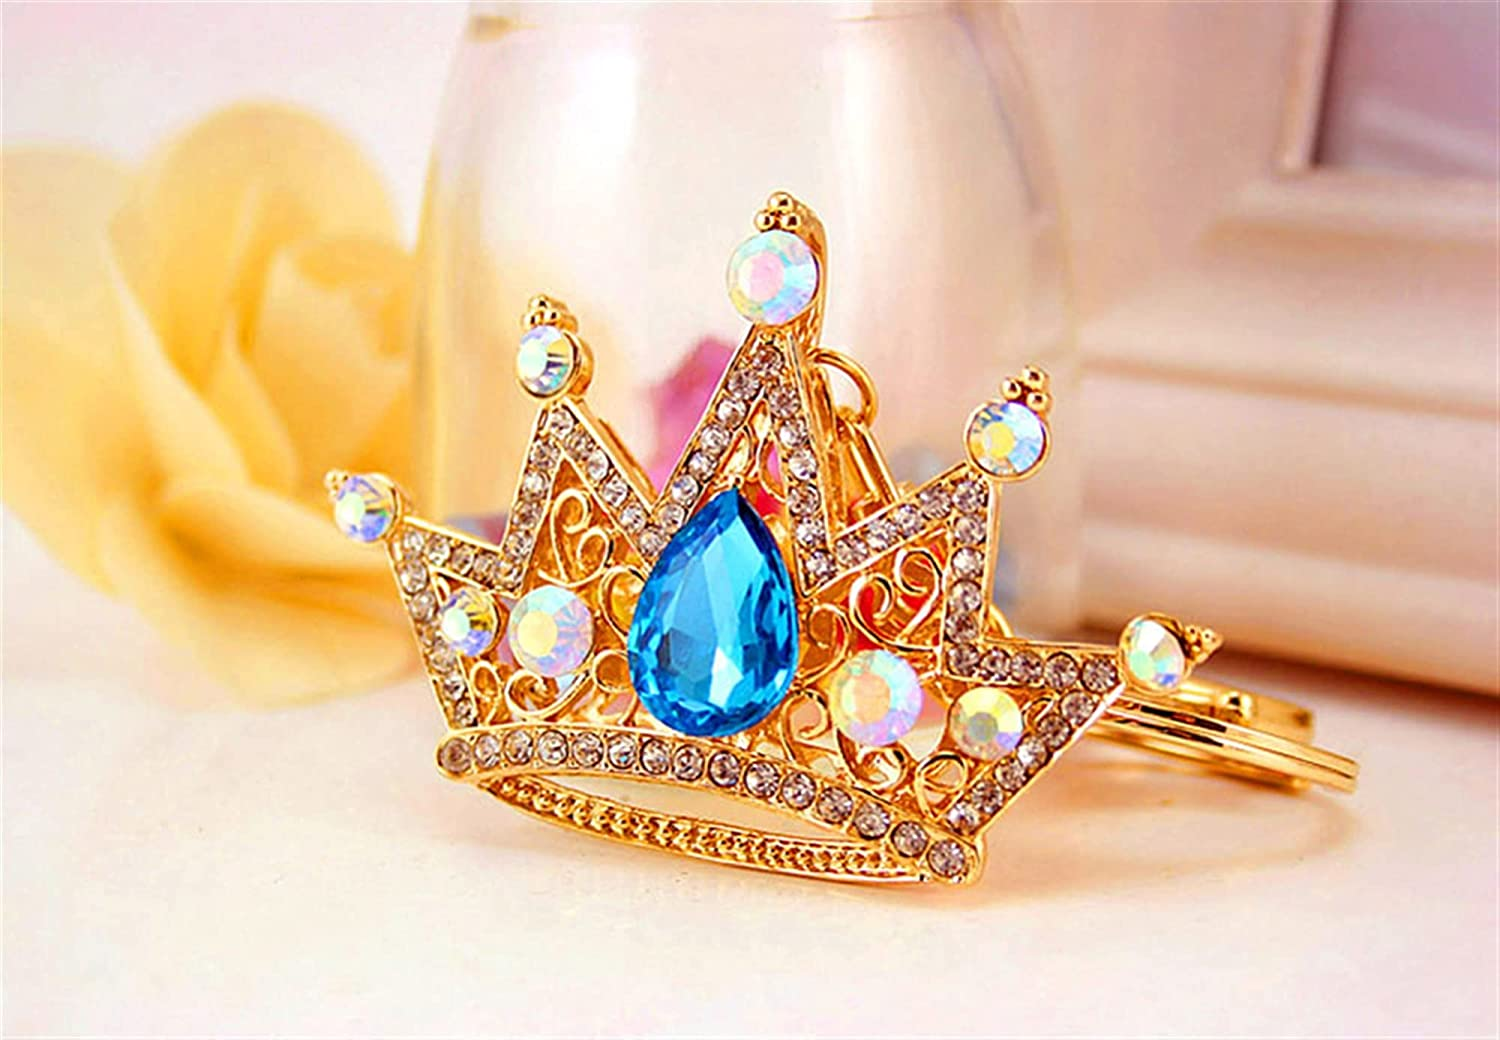 Fashion Creative Animer and price revision Commemorative Gift Crystal Car Crown Key Gorgeous Inlaid